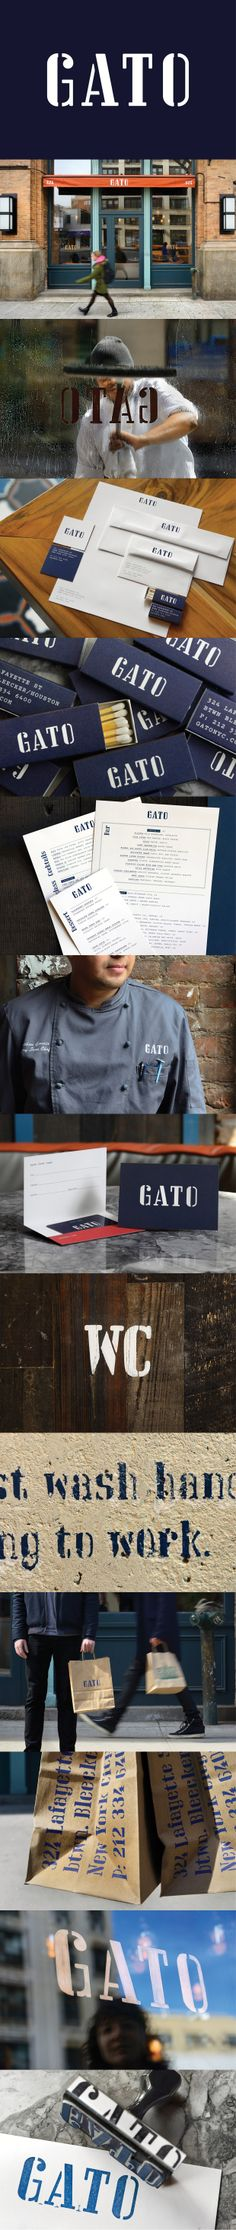 Gato, the new restaurant from chef Bobby Flay. Identity by Pentagram. Project Team: Michael Bierut, partner-in-charge and designer; Photos by Martin Seck. Branding, Brand Identity, Chef Bobby Flay, Michael Bierut, New Work, Fonts, Restaurant, Logo, World